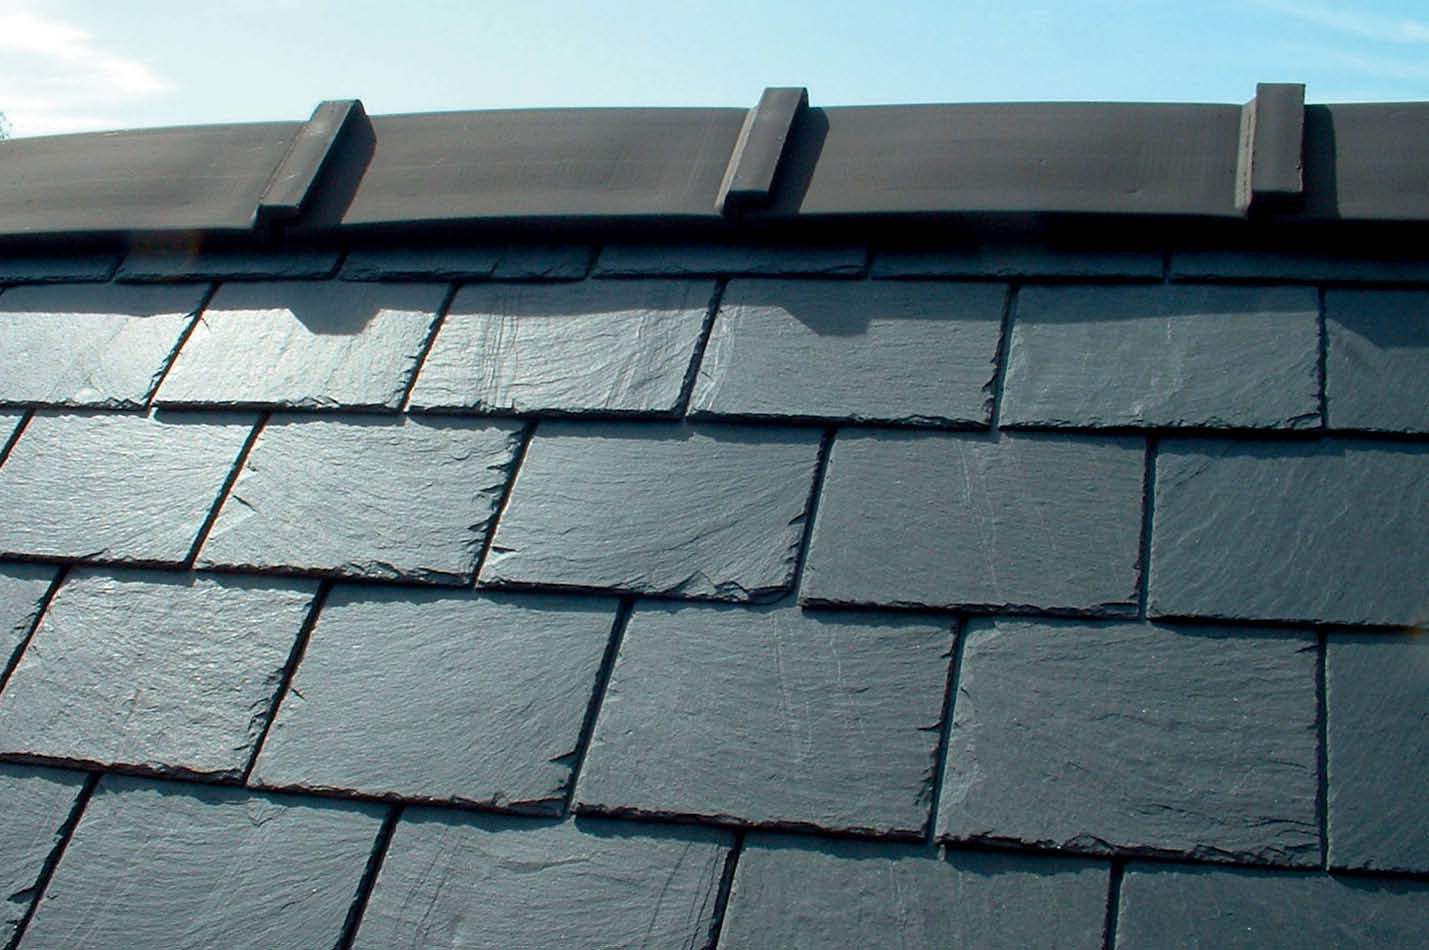 Cembrit roofing tile